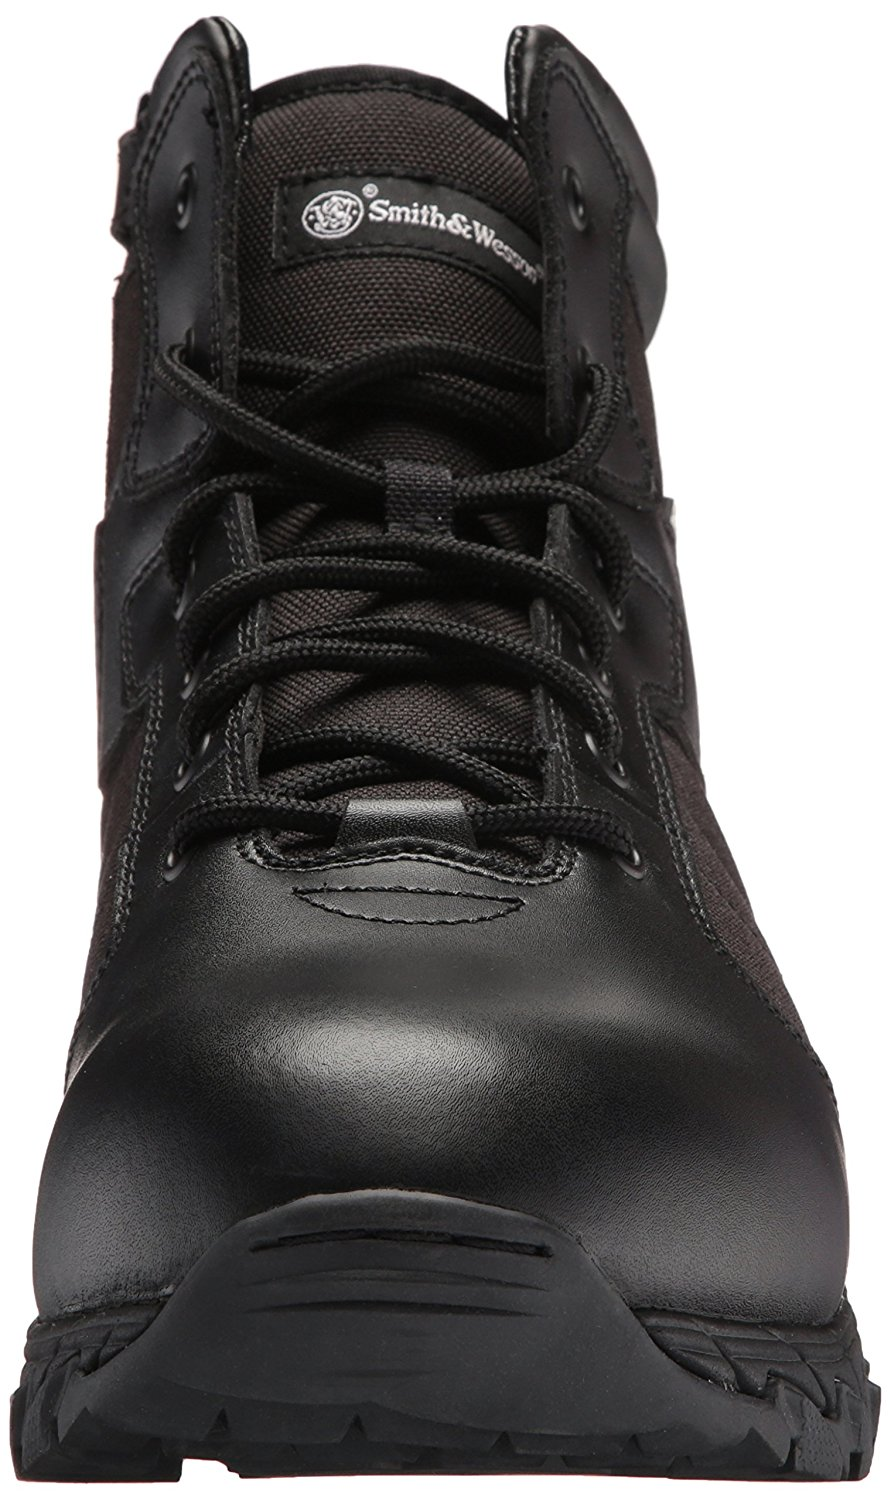 """Smith & Wesson® Footwear Breach 2.0 Men's Tactical Side-Zip Boots - 6"""" Coyote, 10.5 Regular"""